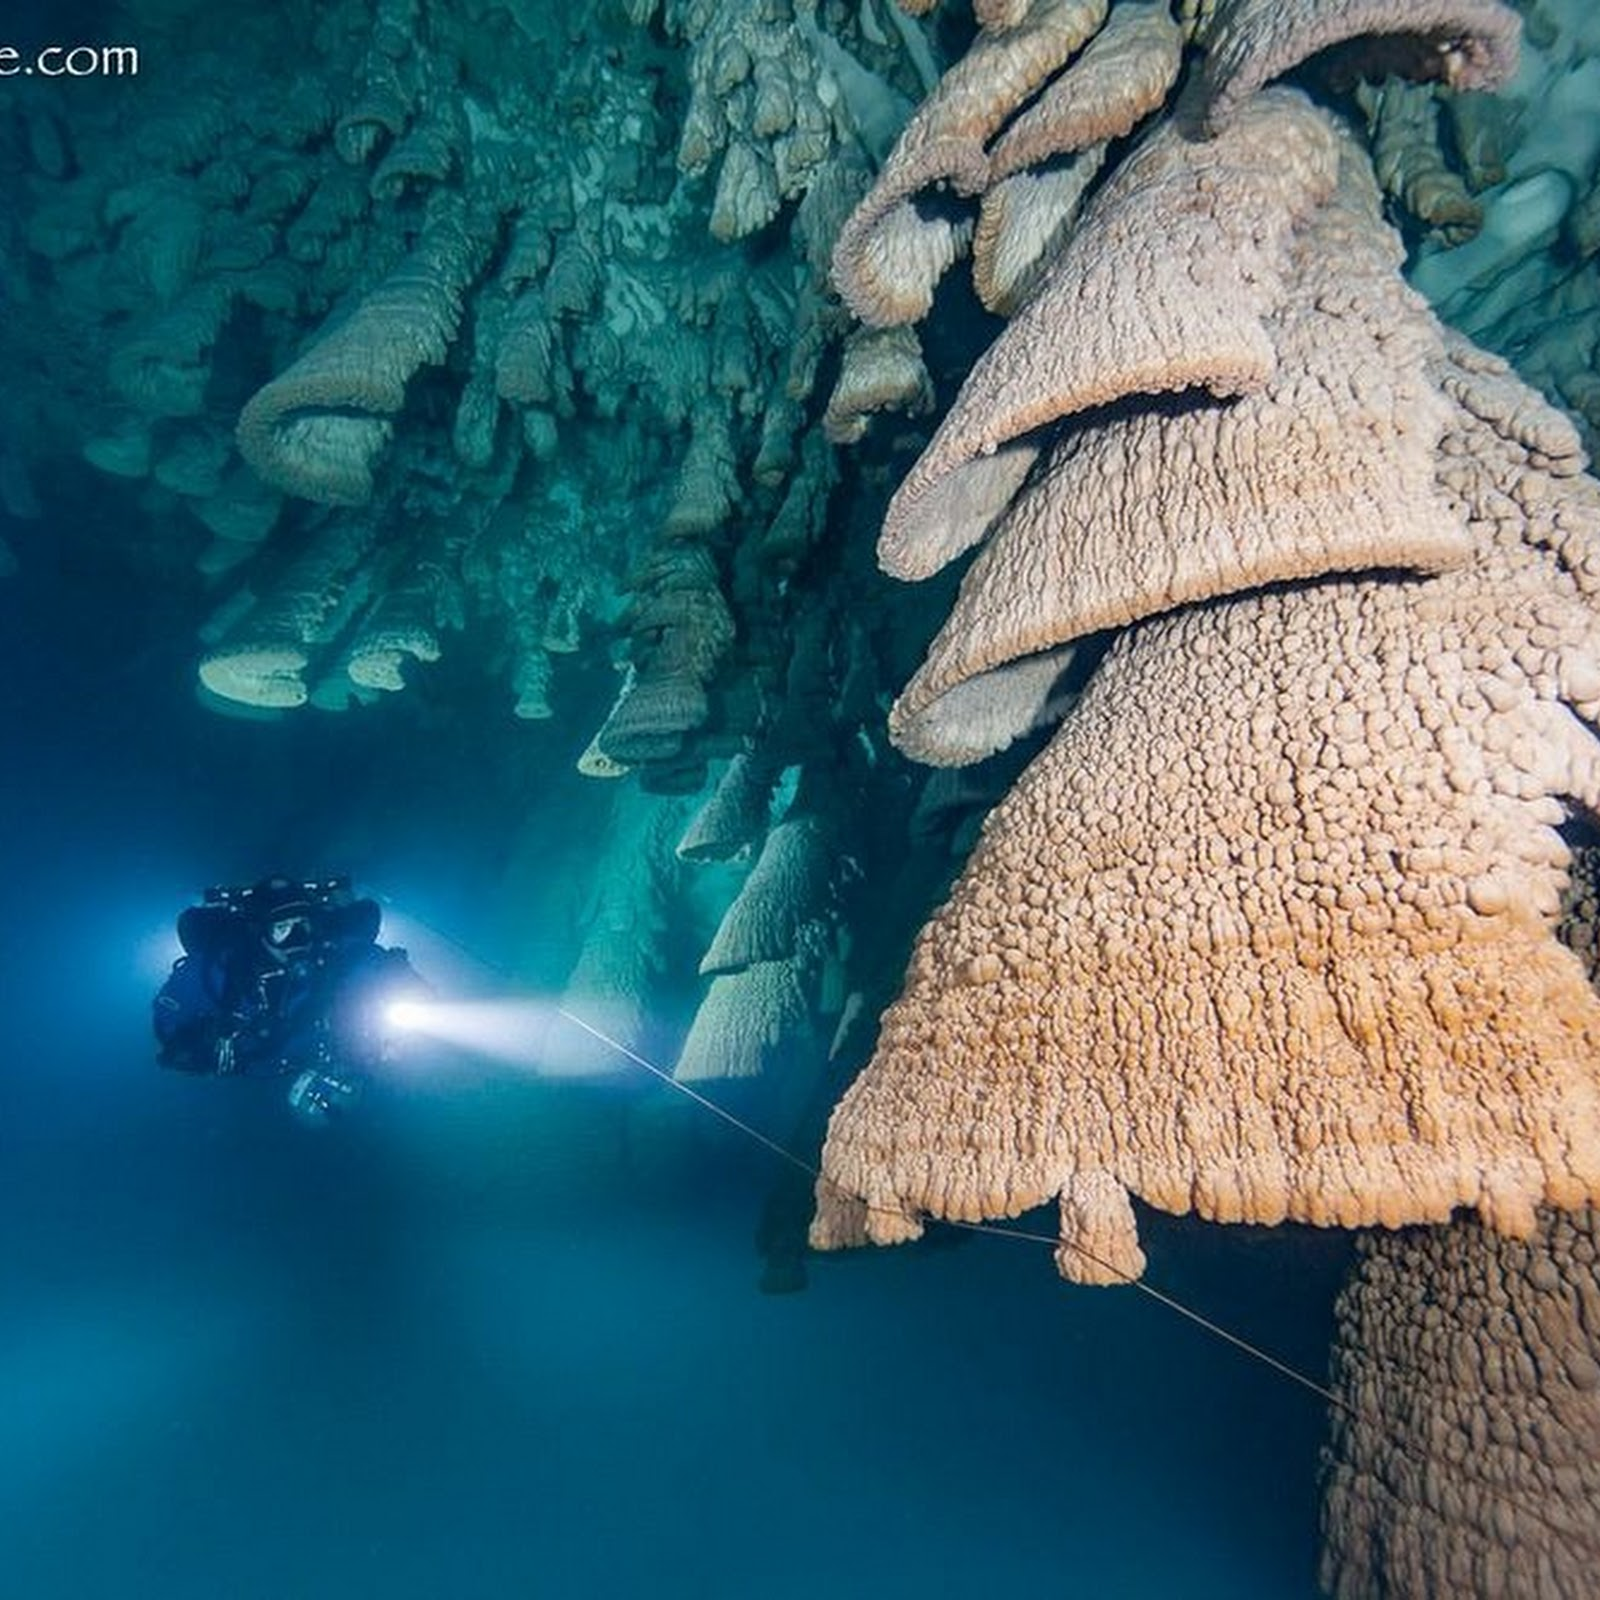 The Hell's Bells of Cenote Zapote